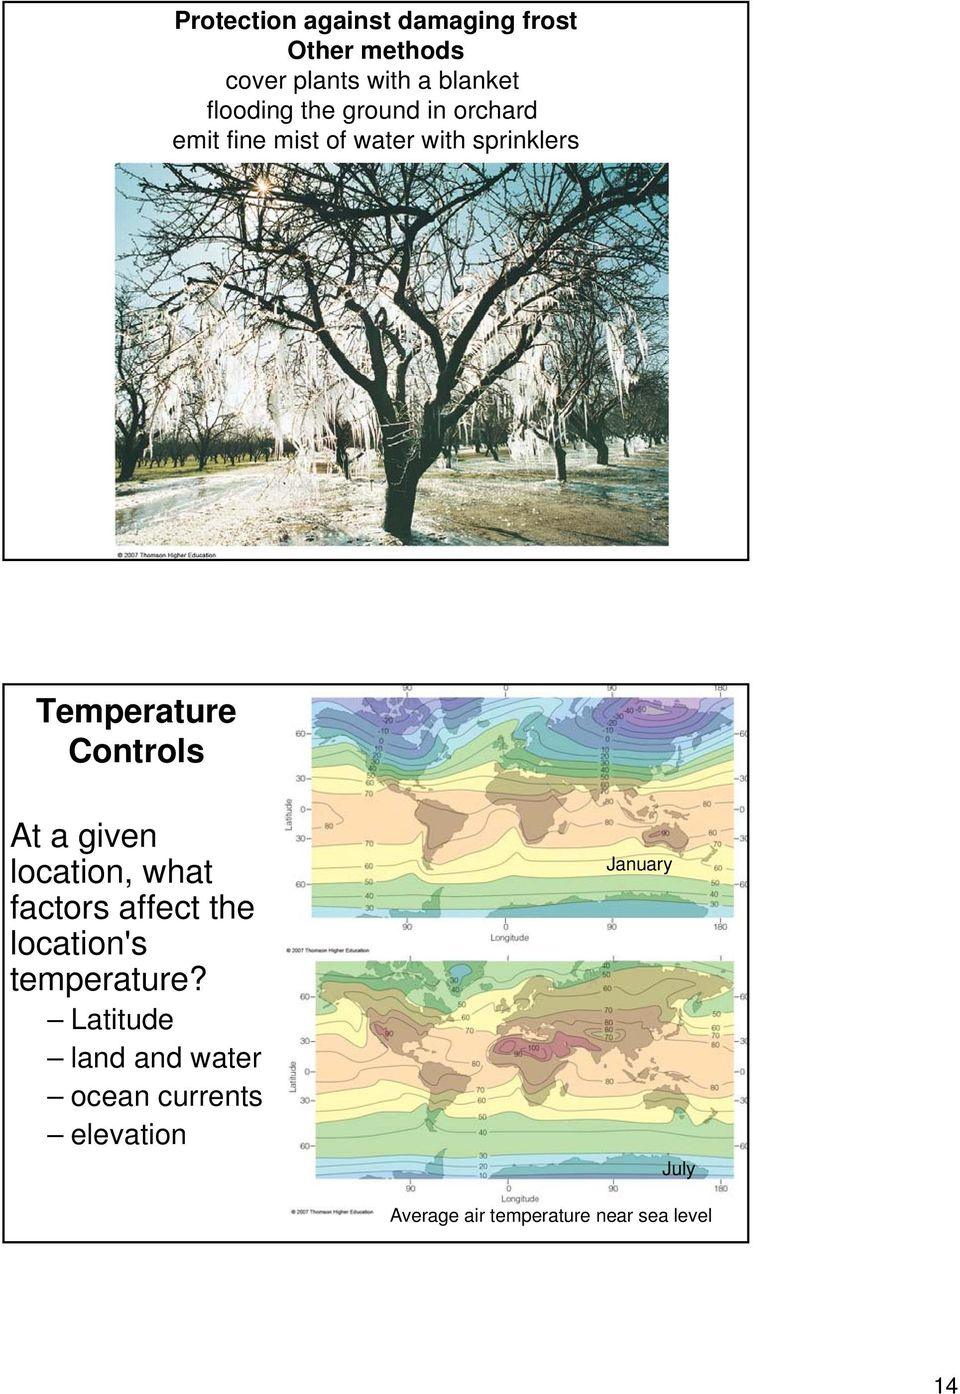 At a given location, what factors affect the location's temperature?